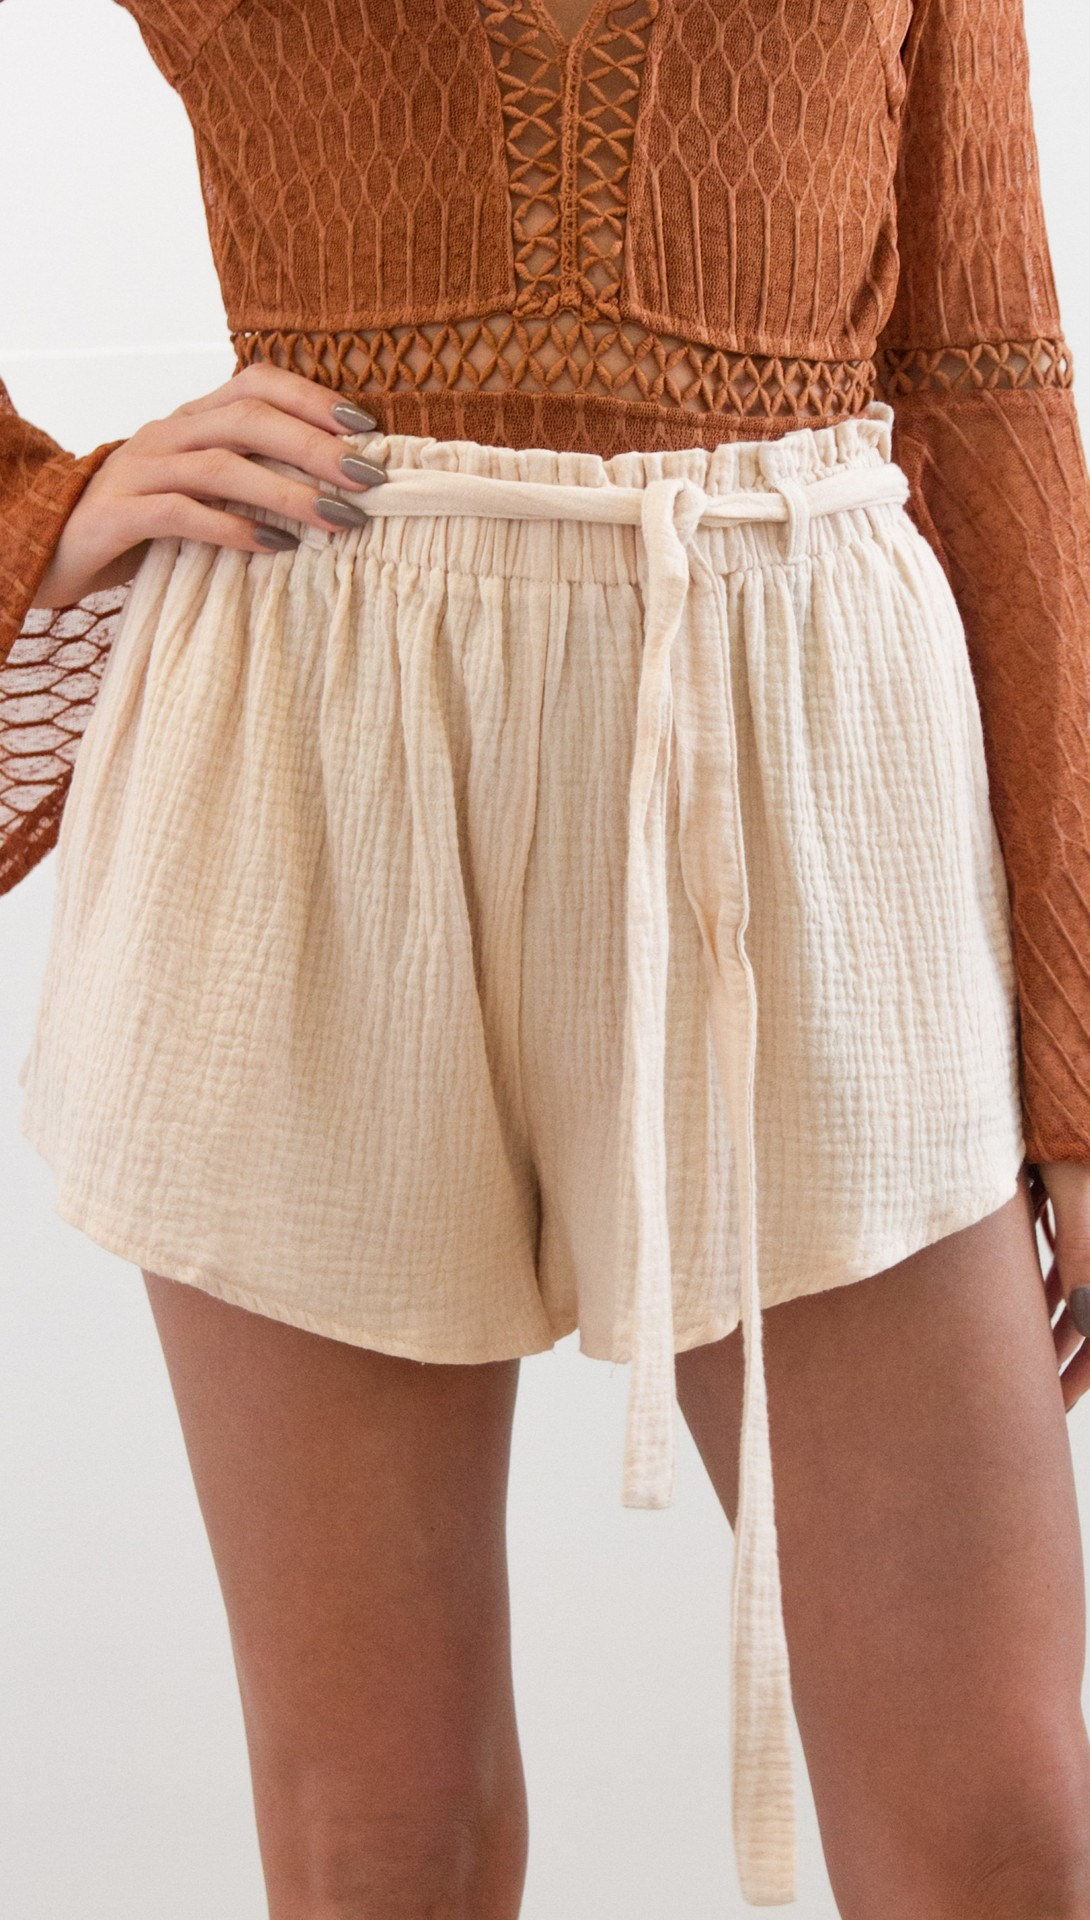 Pop Tide Nice Fashion Women Lace Up Casual Shorts Belt Solid Loose Shorts Sashes Elastic High Waist Summer Shorts